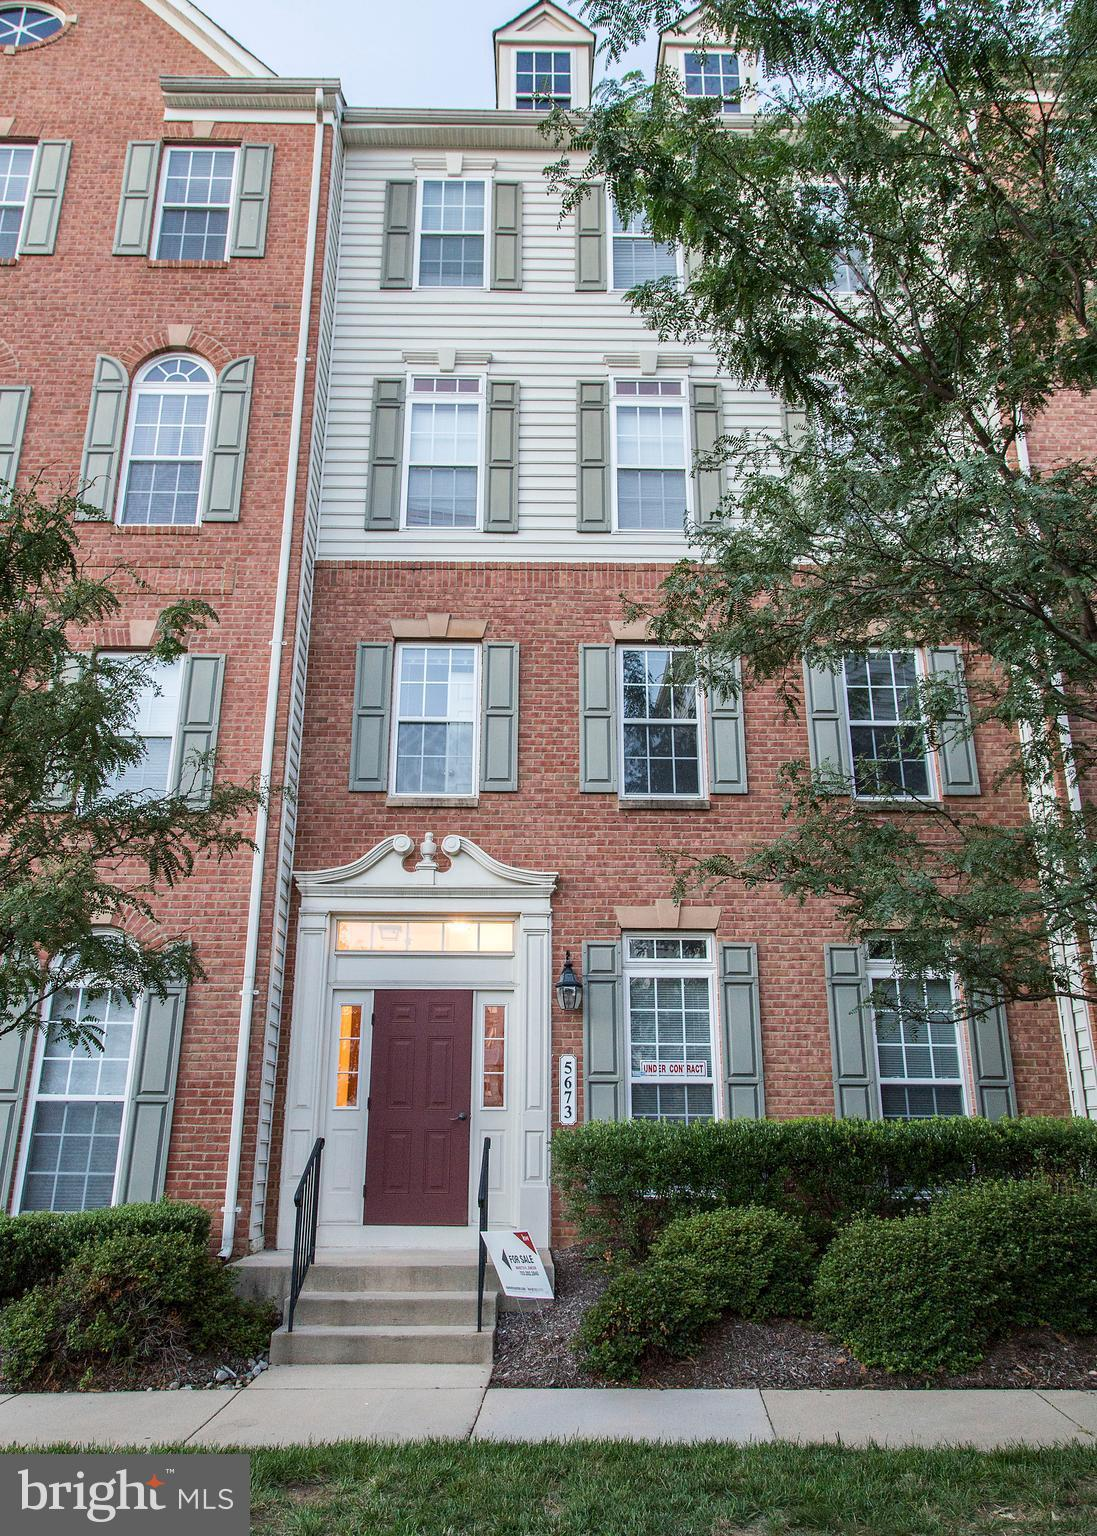 BACK ON THE MARKET! Great looking 3 bedroom 2 full bath Condo/Townhouse in a very convenient location! Rooms are spacious, amenities great, gleaming hardwood floors, granite counters and stainless appliances. Condo fee covers roof, trash and snow removal, water, grounds maintenance and deck maintenance. Come see it quickly!